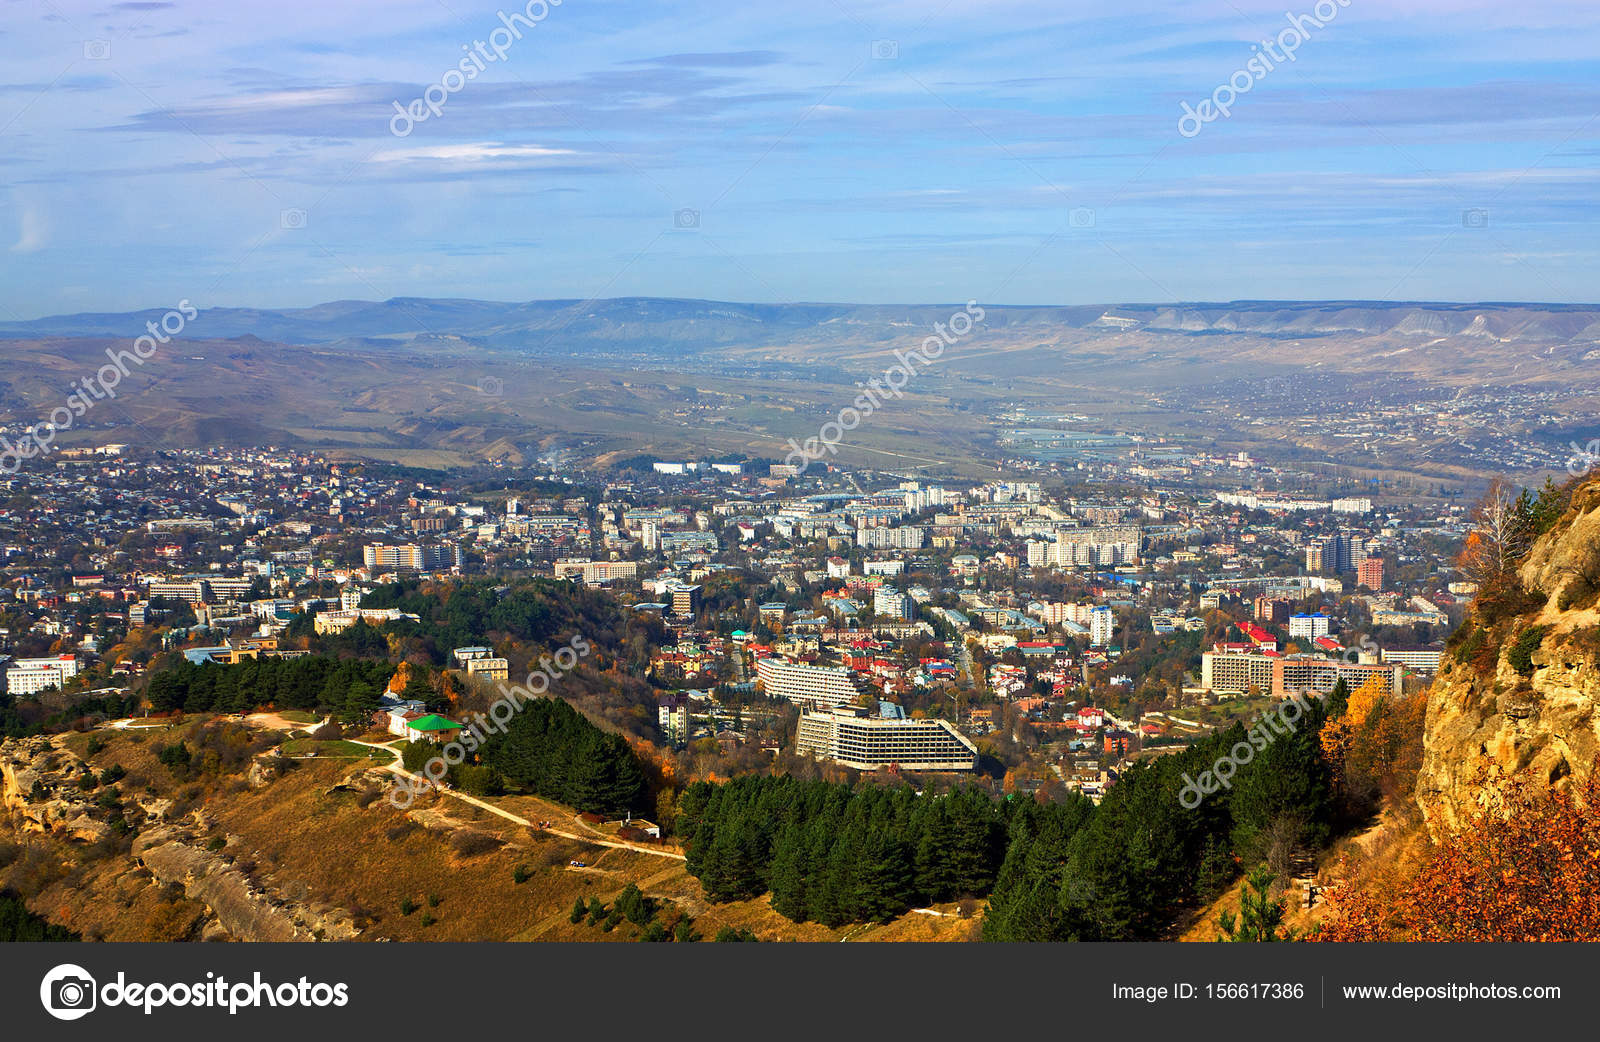 Kislovodsk - what to see in the beautiful city of the Caucasus (photo)